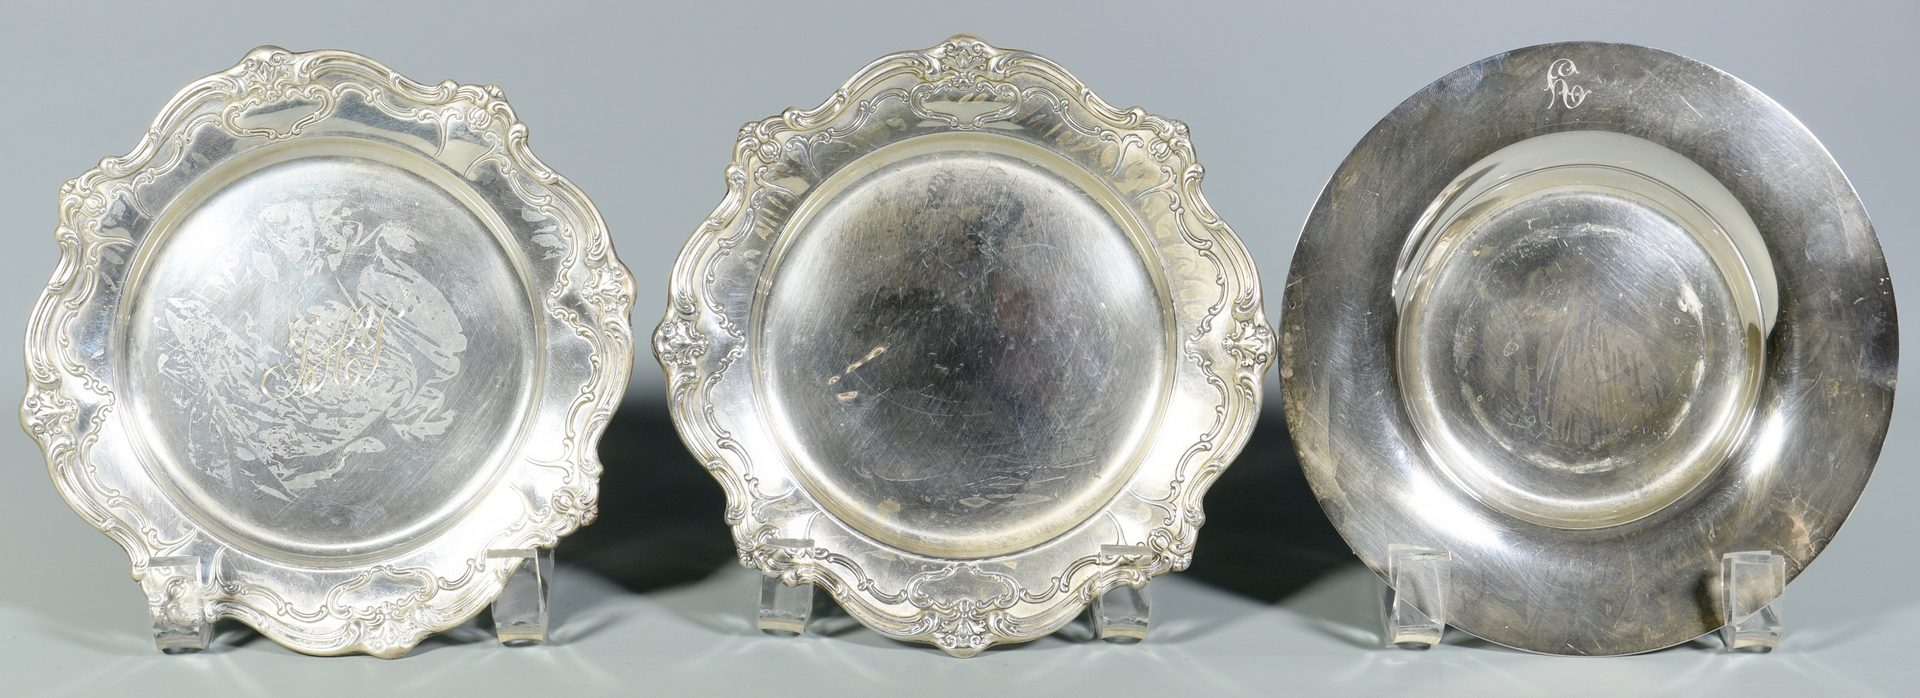 Lot 855: 13 assorted Sterling Plates and Trays